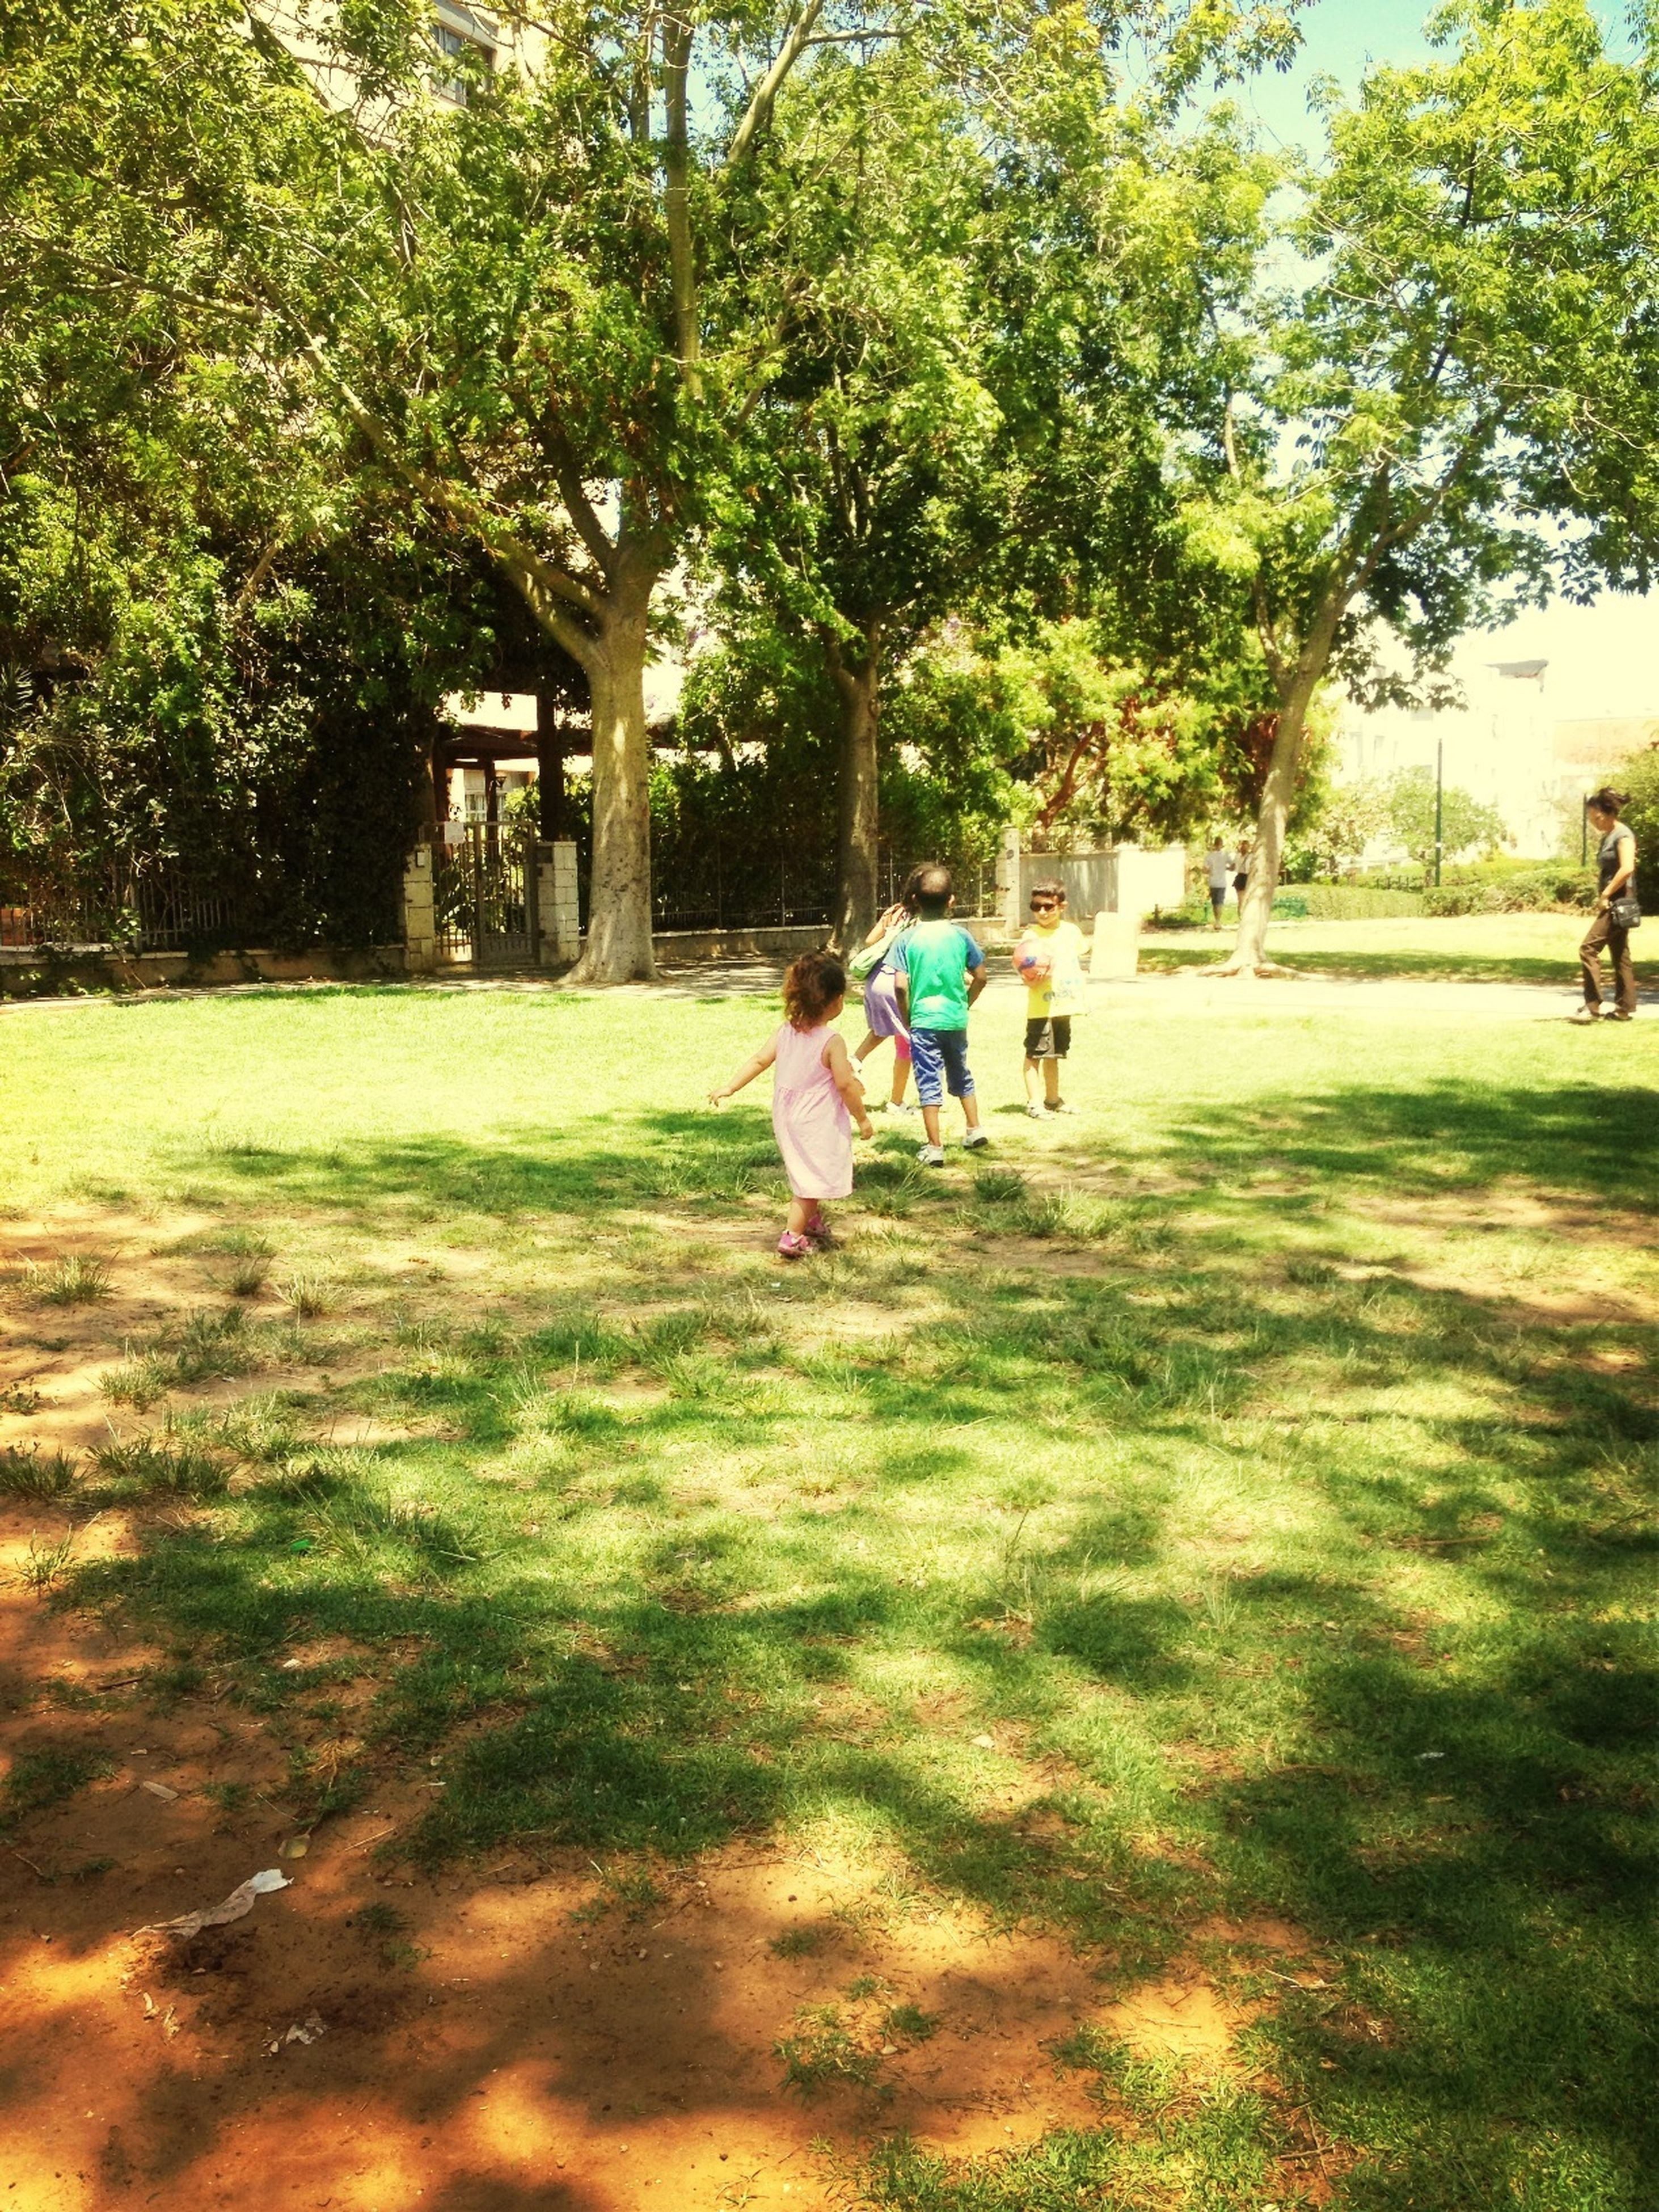 grass, lifestyles, leisure activity, tree, park - man made space, green color, men, childhood, togetherness, person, full length, boys, playing, girls, bonding, walking, growth, field